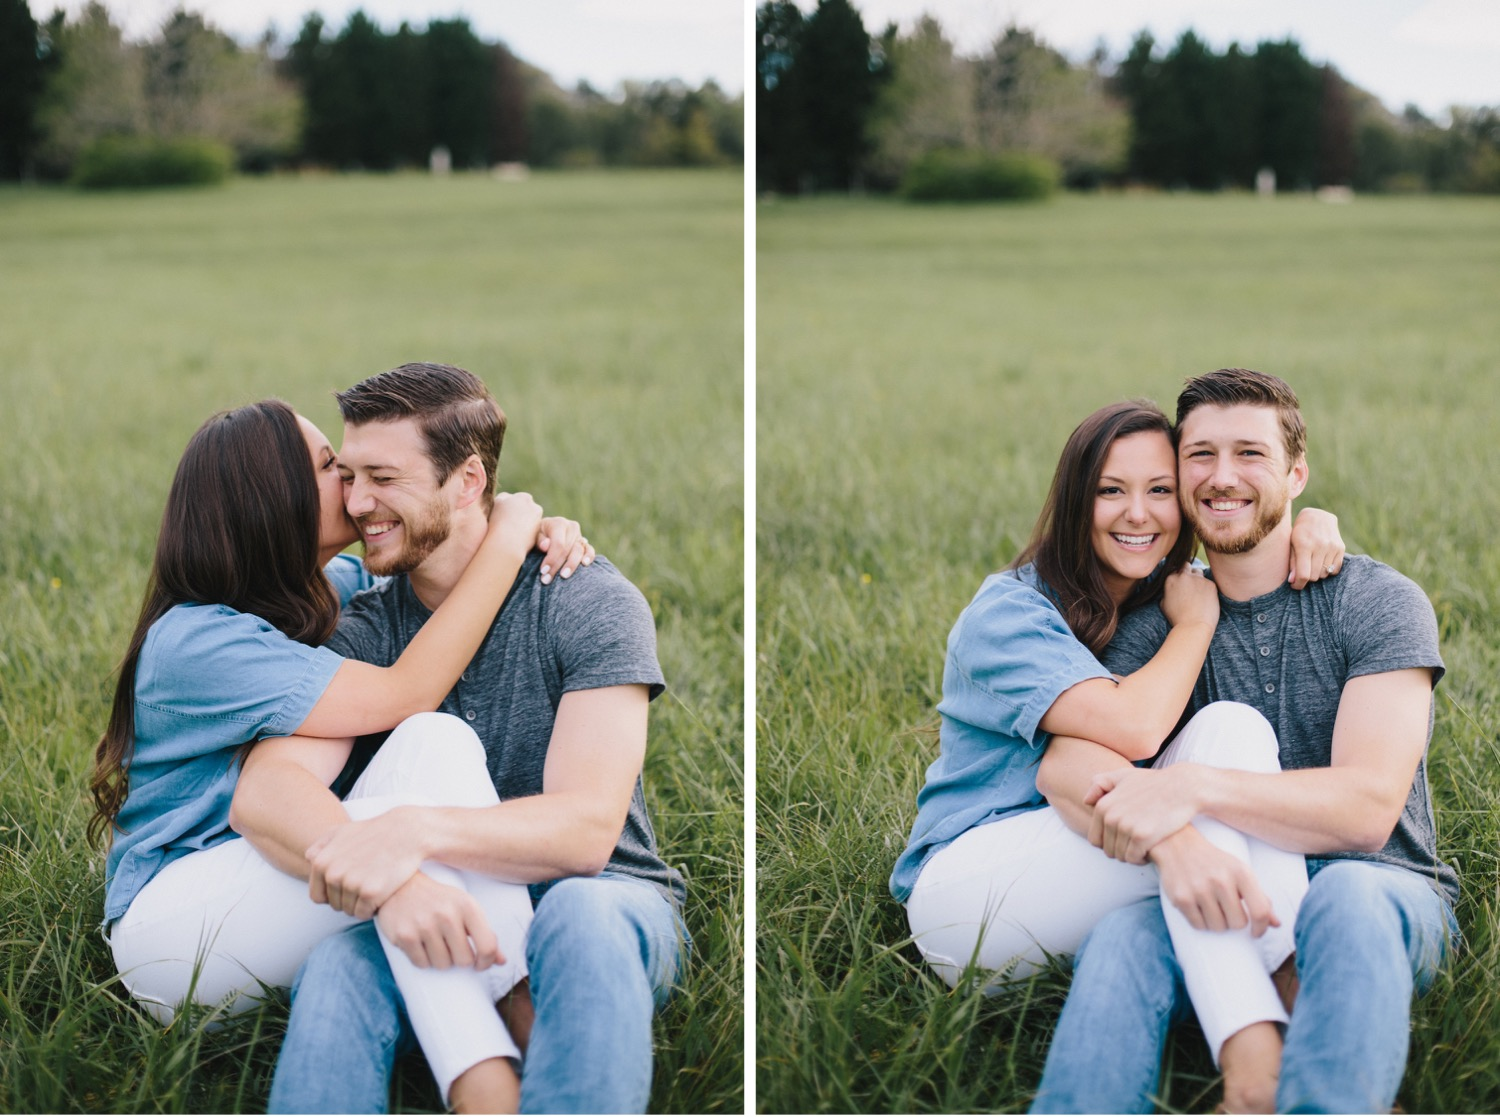 05_hillary-matt-22_hillary-matt-25_couples_photography_session.jpg